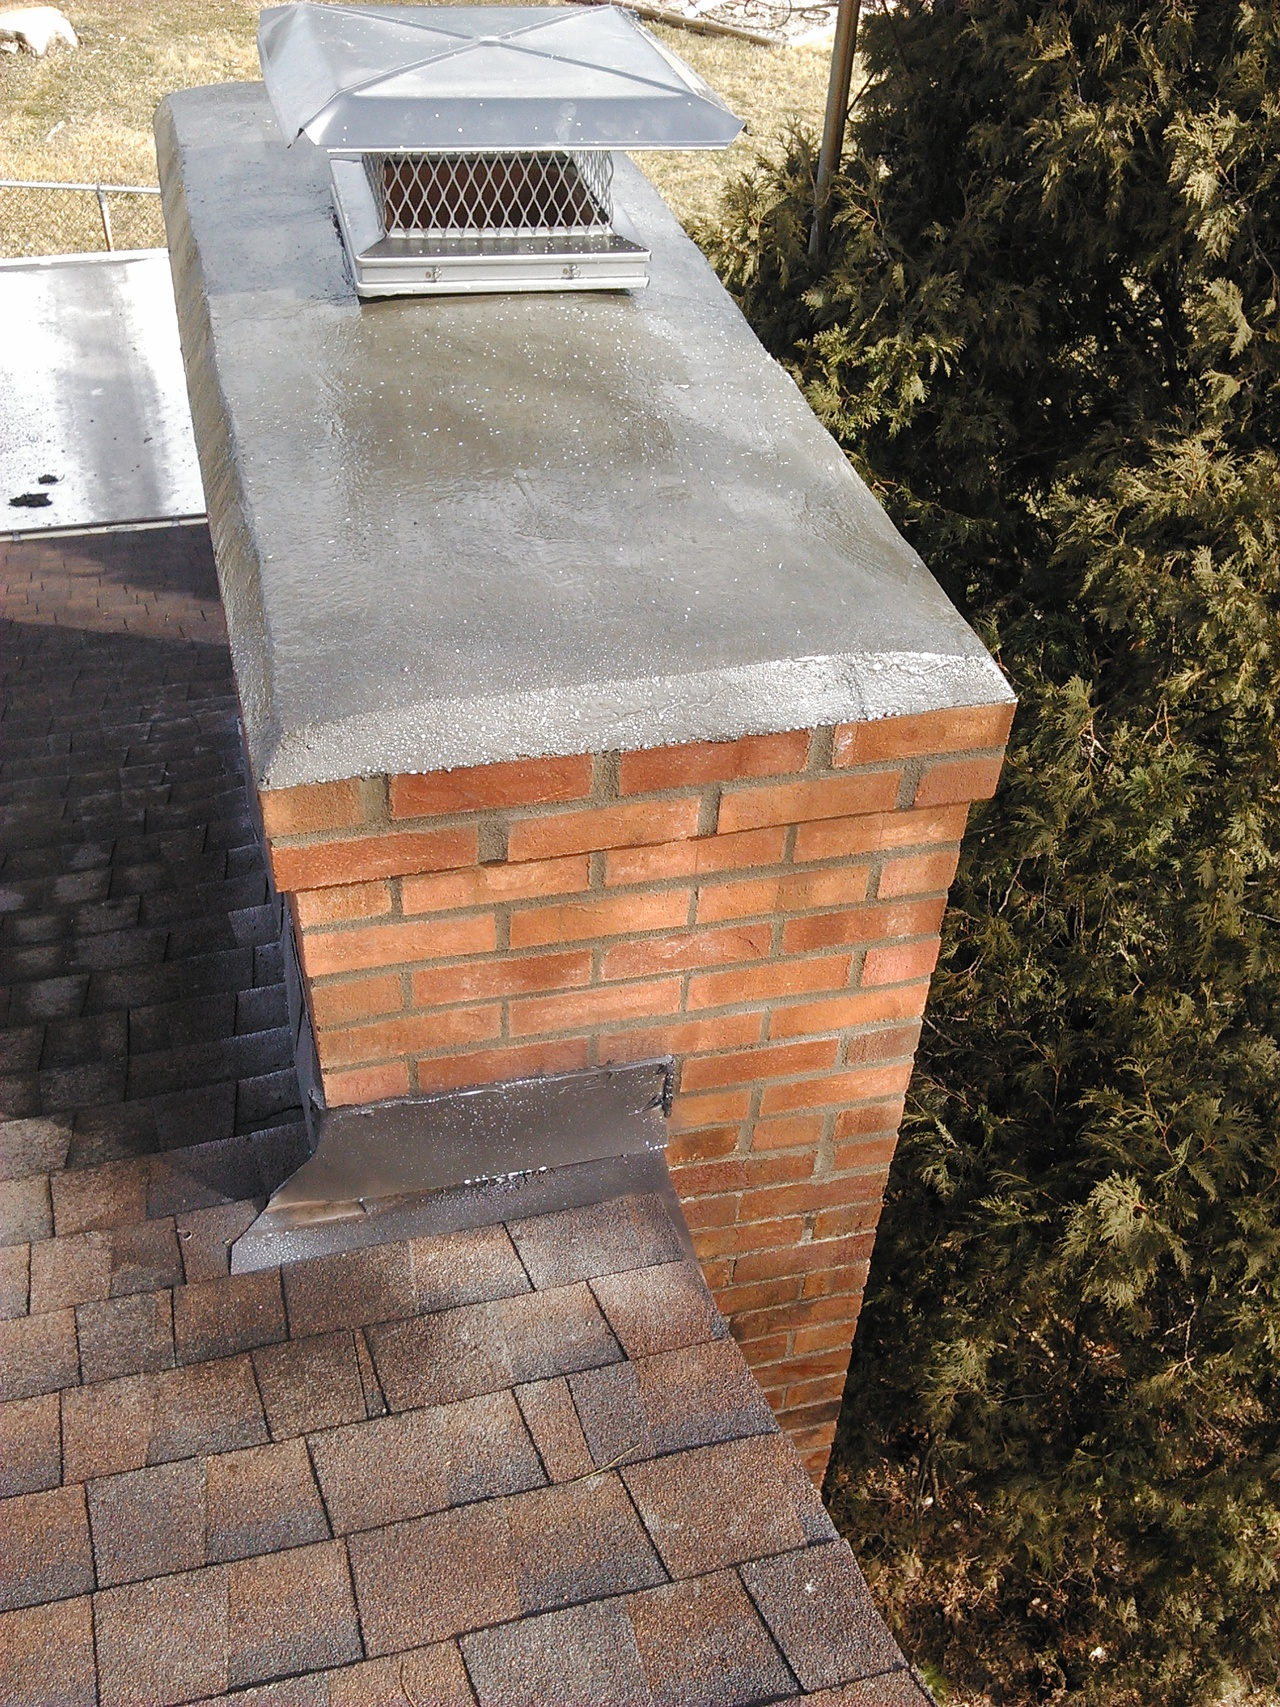 Cement Chimney Repair : Prevent leaking chimneys fireplaces with tips from